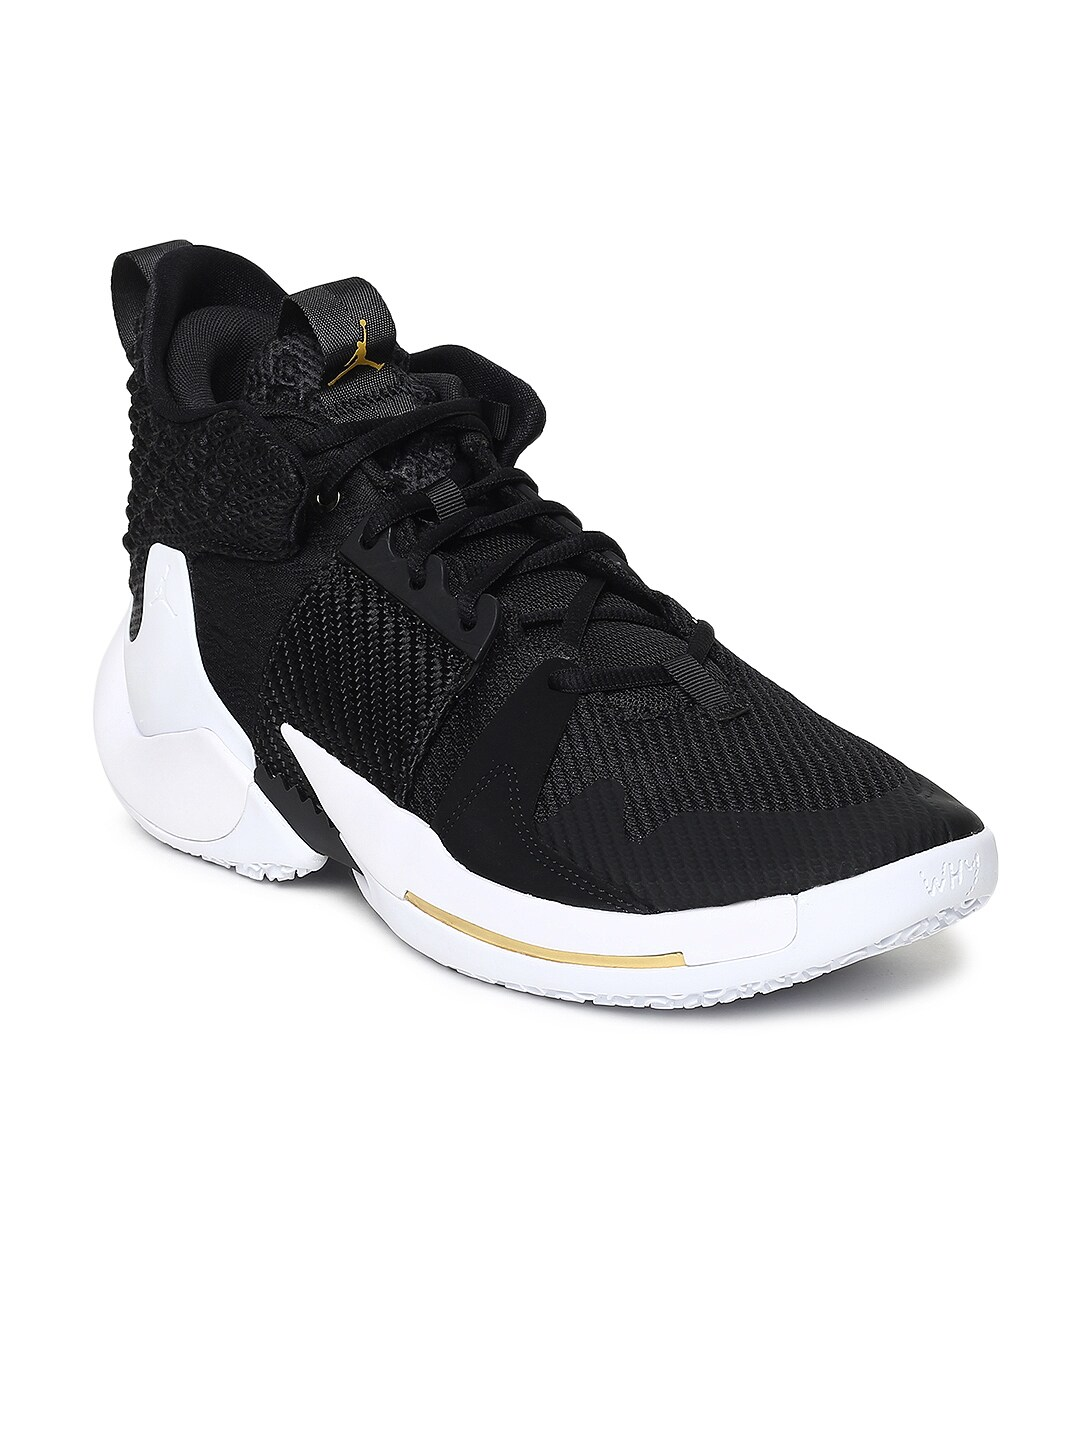 413224c8436c Jordan Shoes - Buy Jordan Shoes For Men Online in India